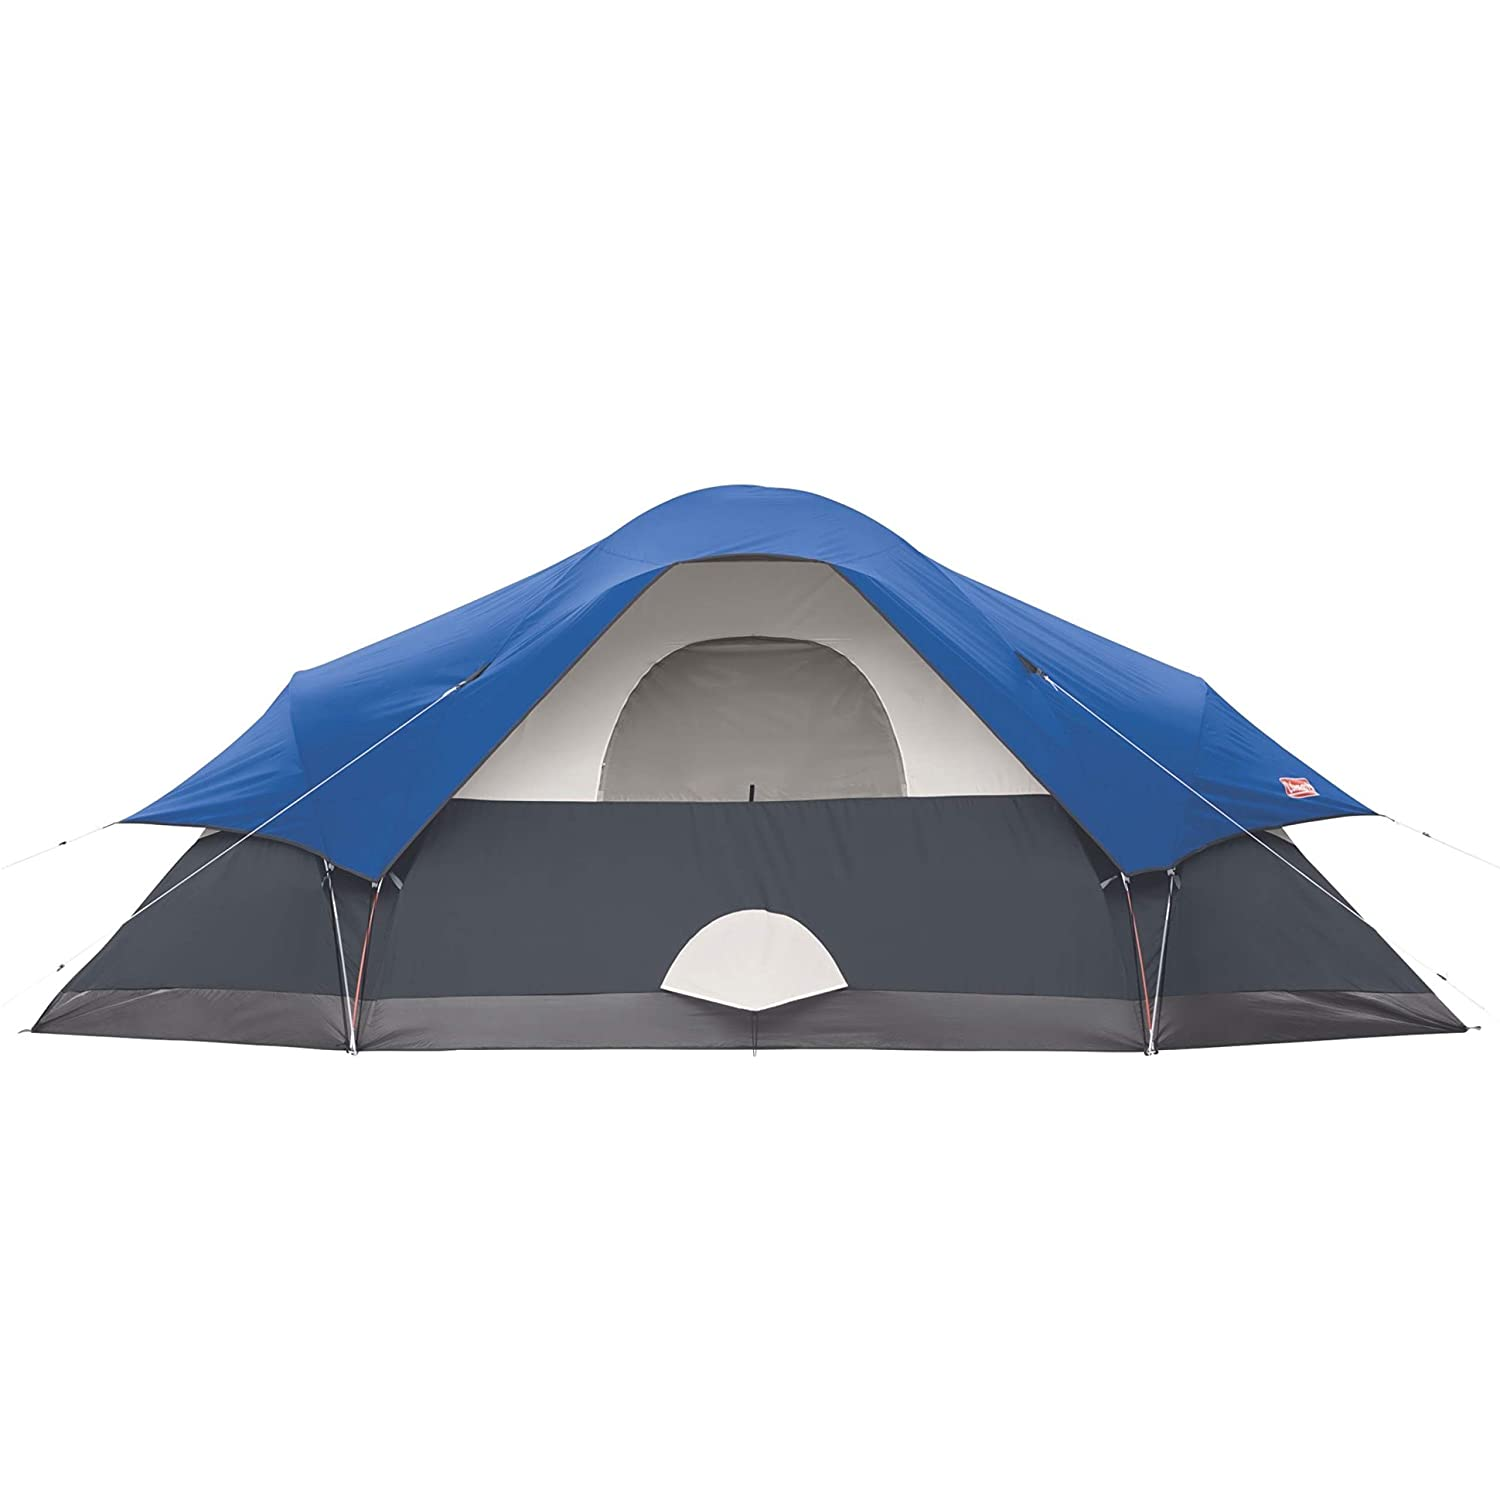 15 Best Coleman Tents Review (August 2019) - Tents Review